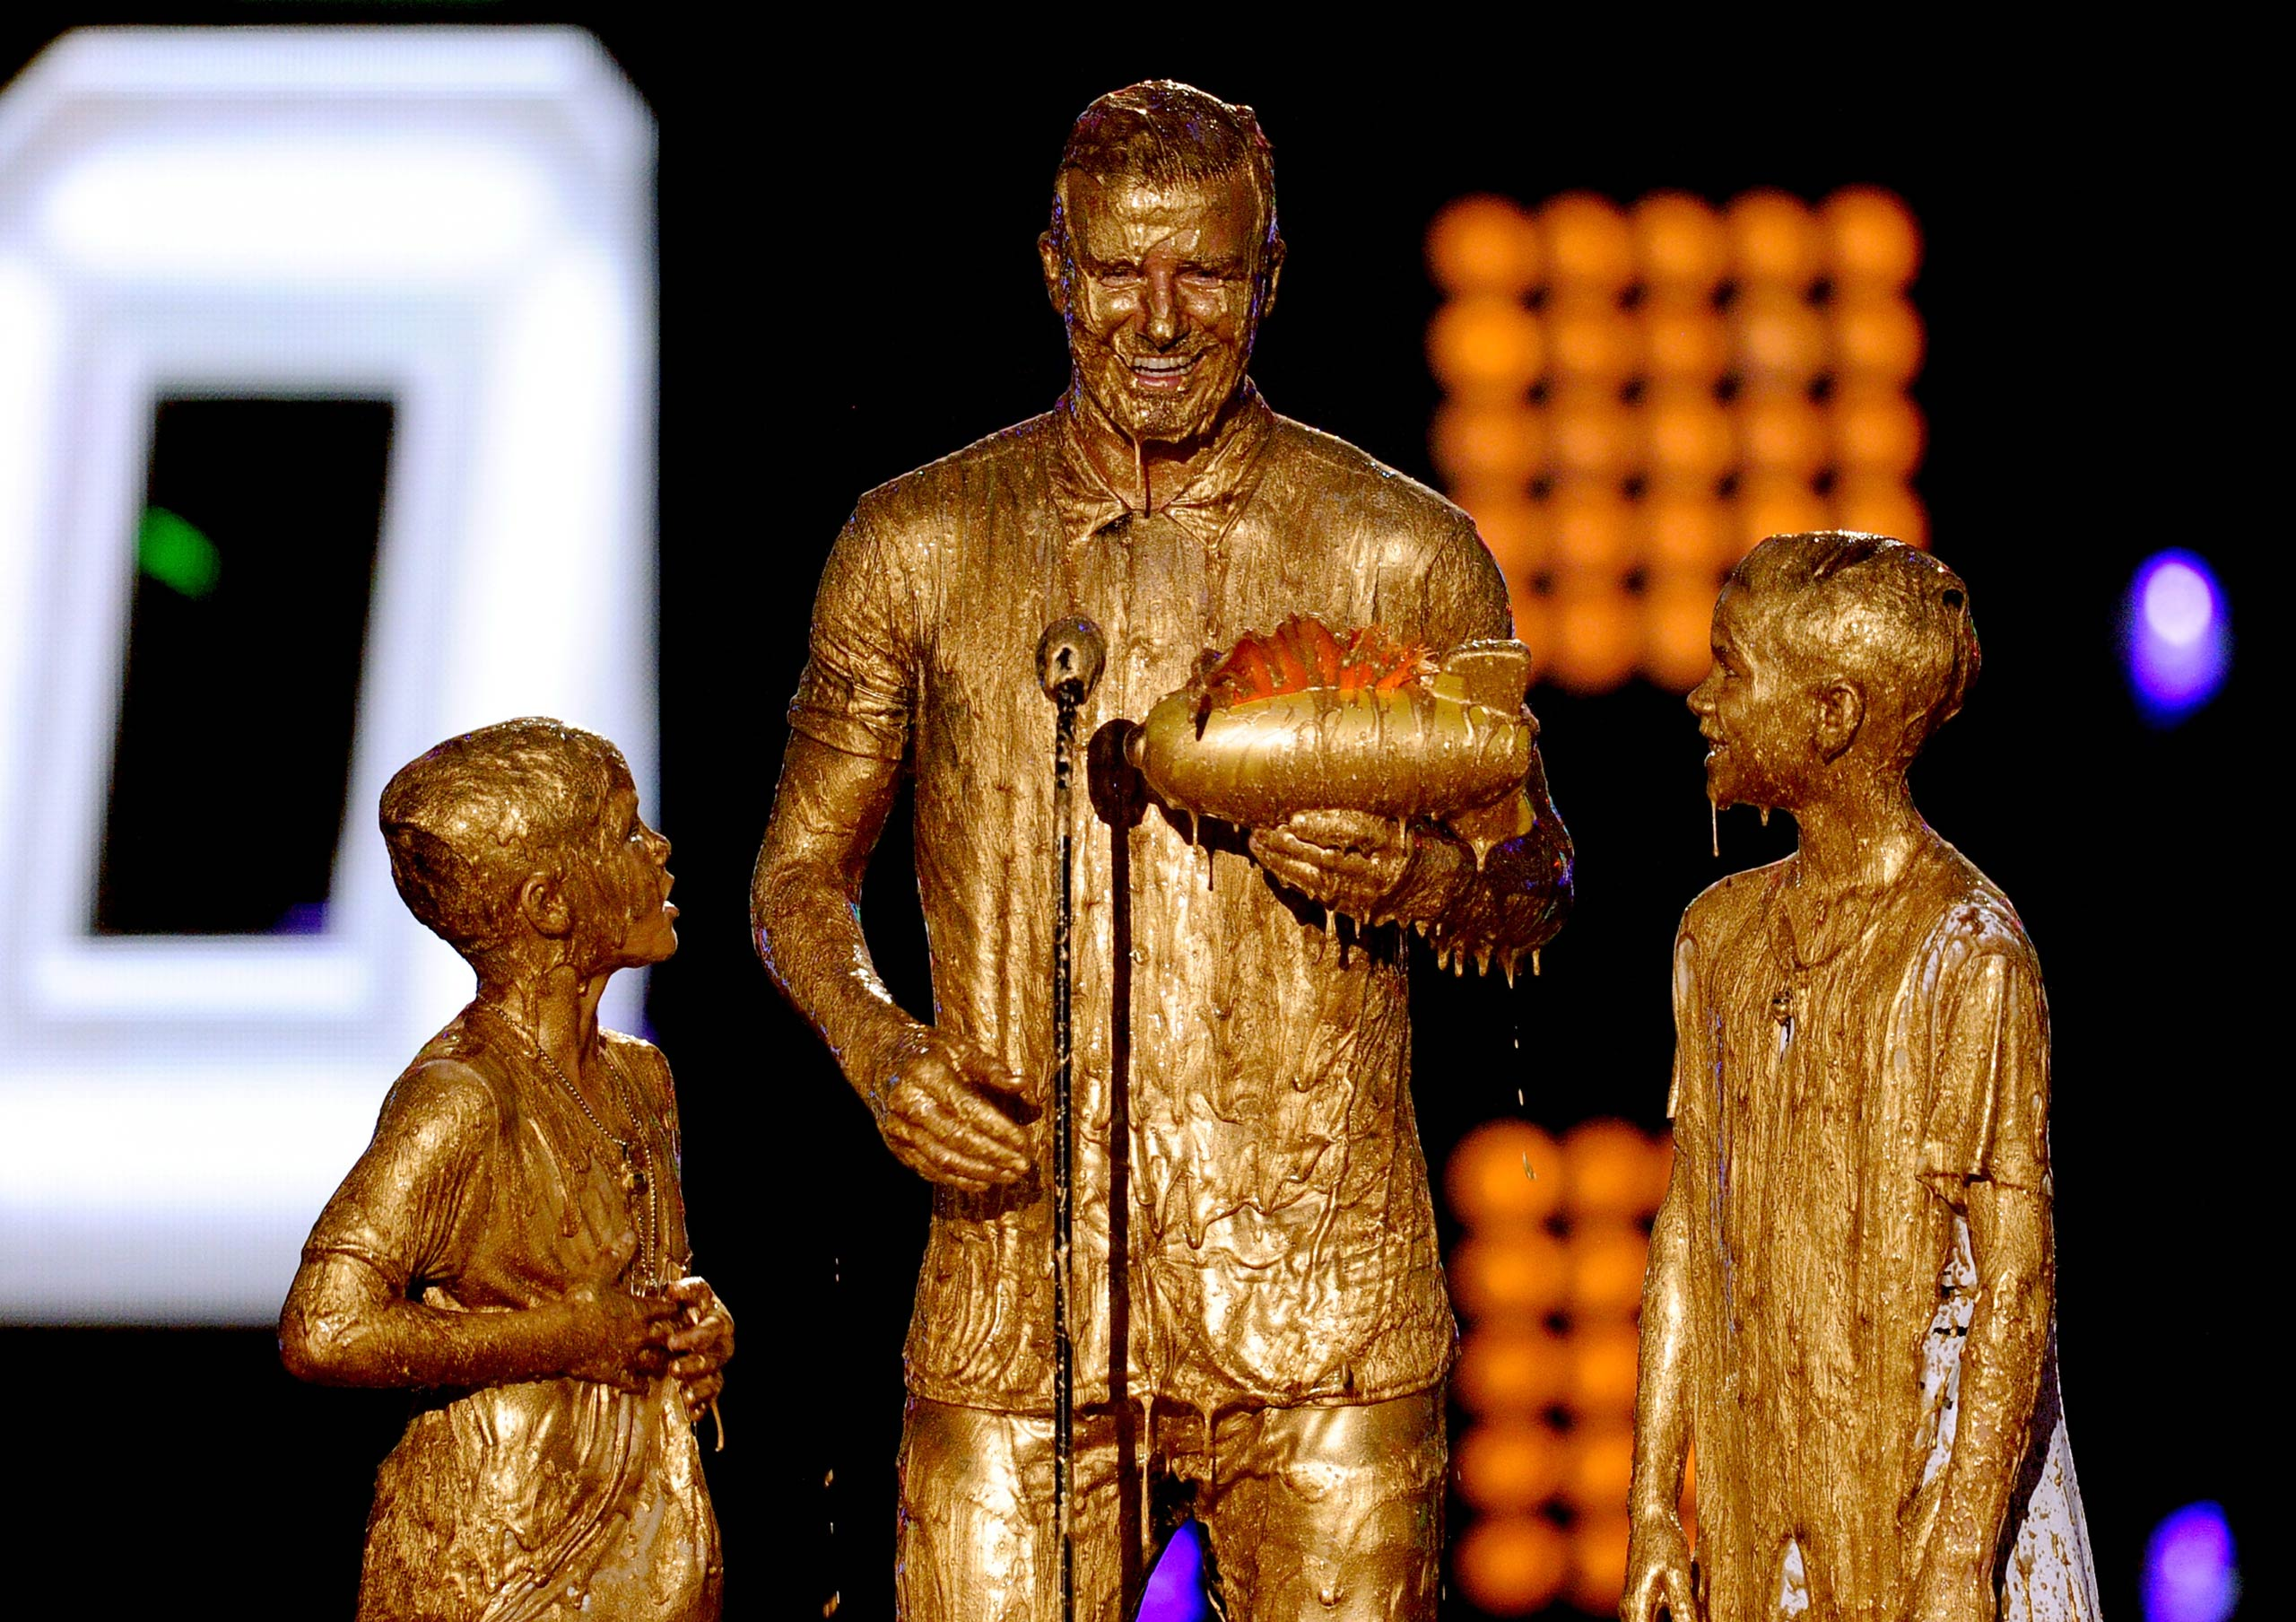 David Beckham with his sons Cruz Beckham and Romeo Beckham get slimed onstage during Nickelodeon Kids' Choice Sports Awards 2014 at UCLA's Pauley Pavilion on in Los Angeles in 2014.